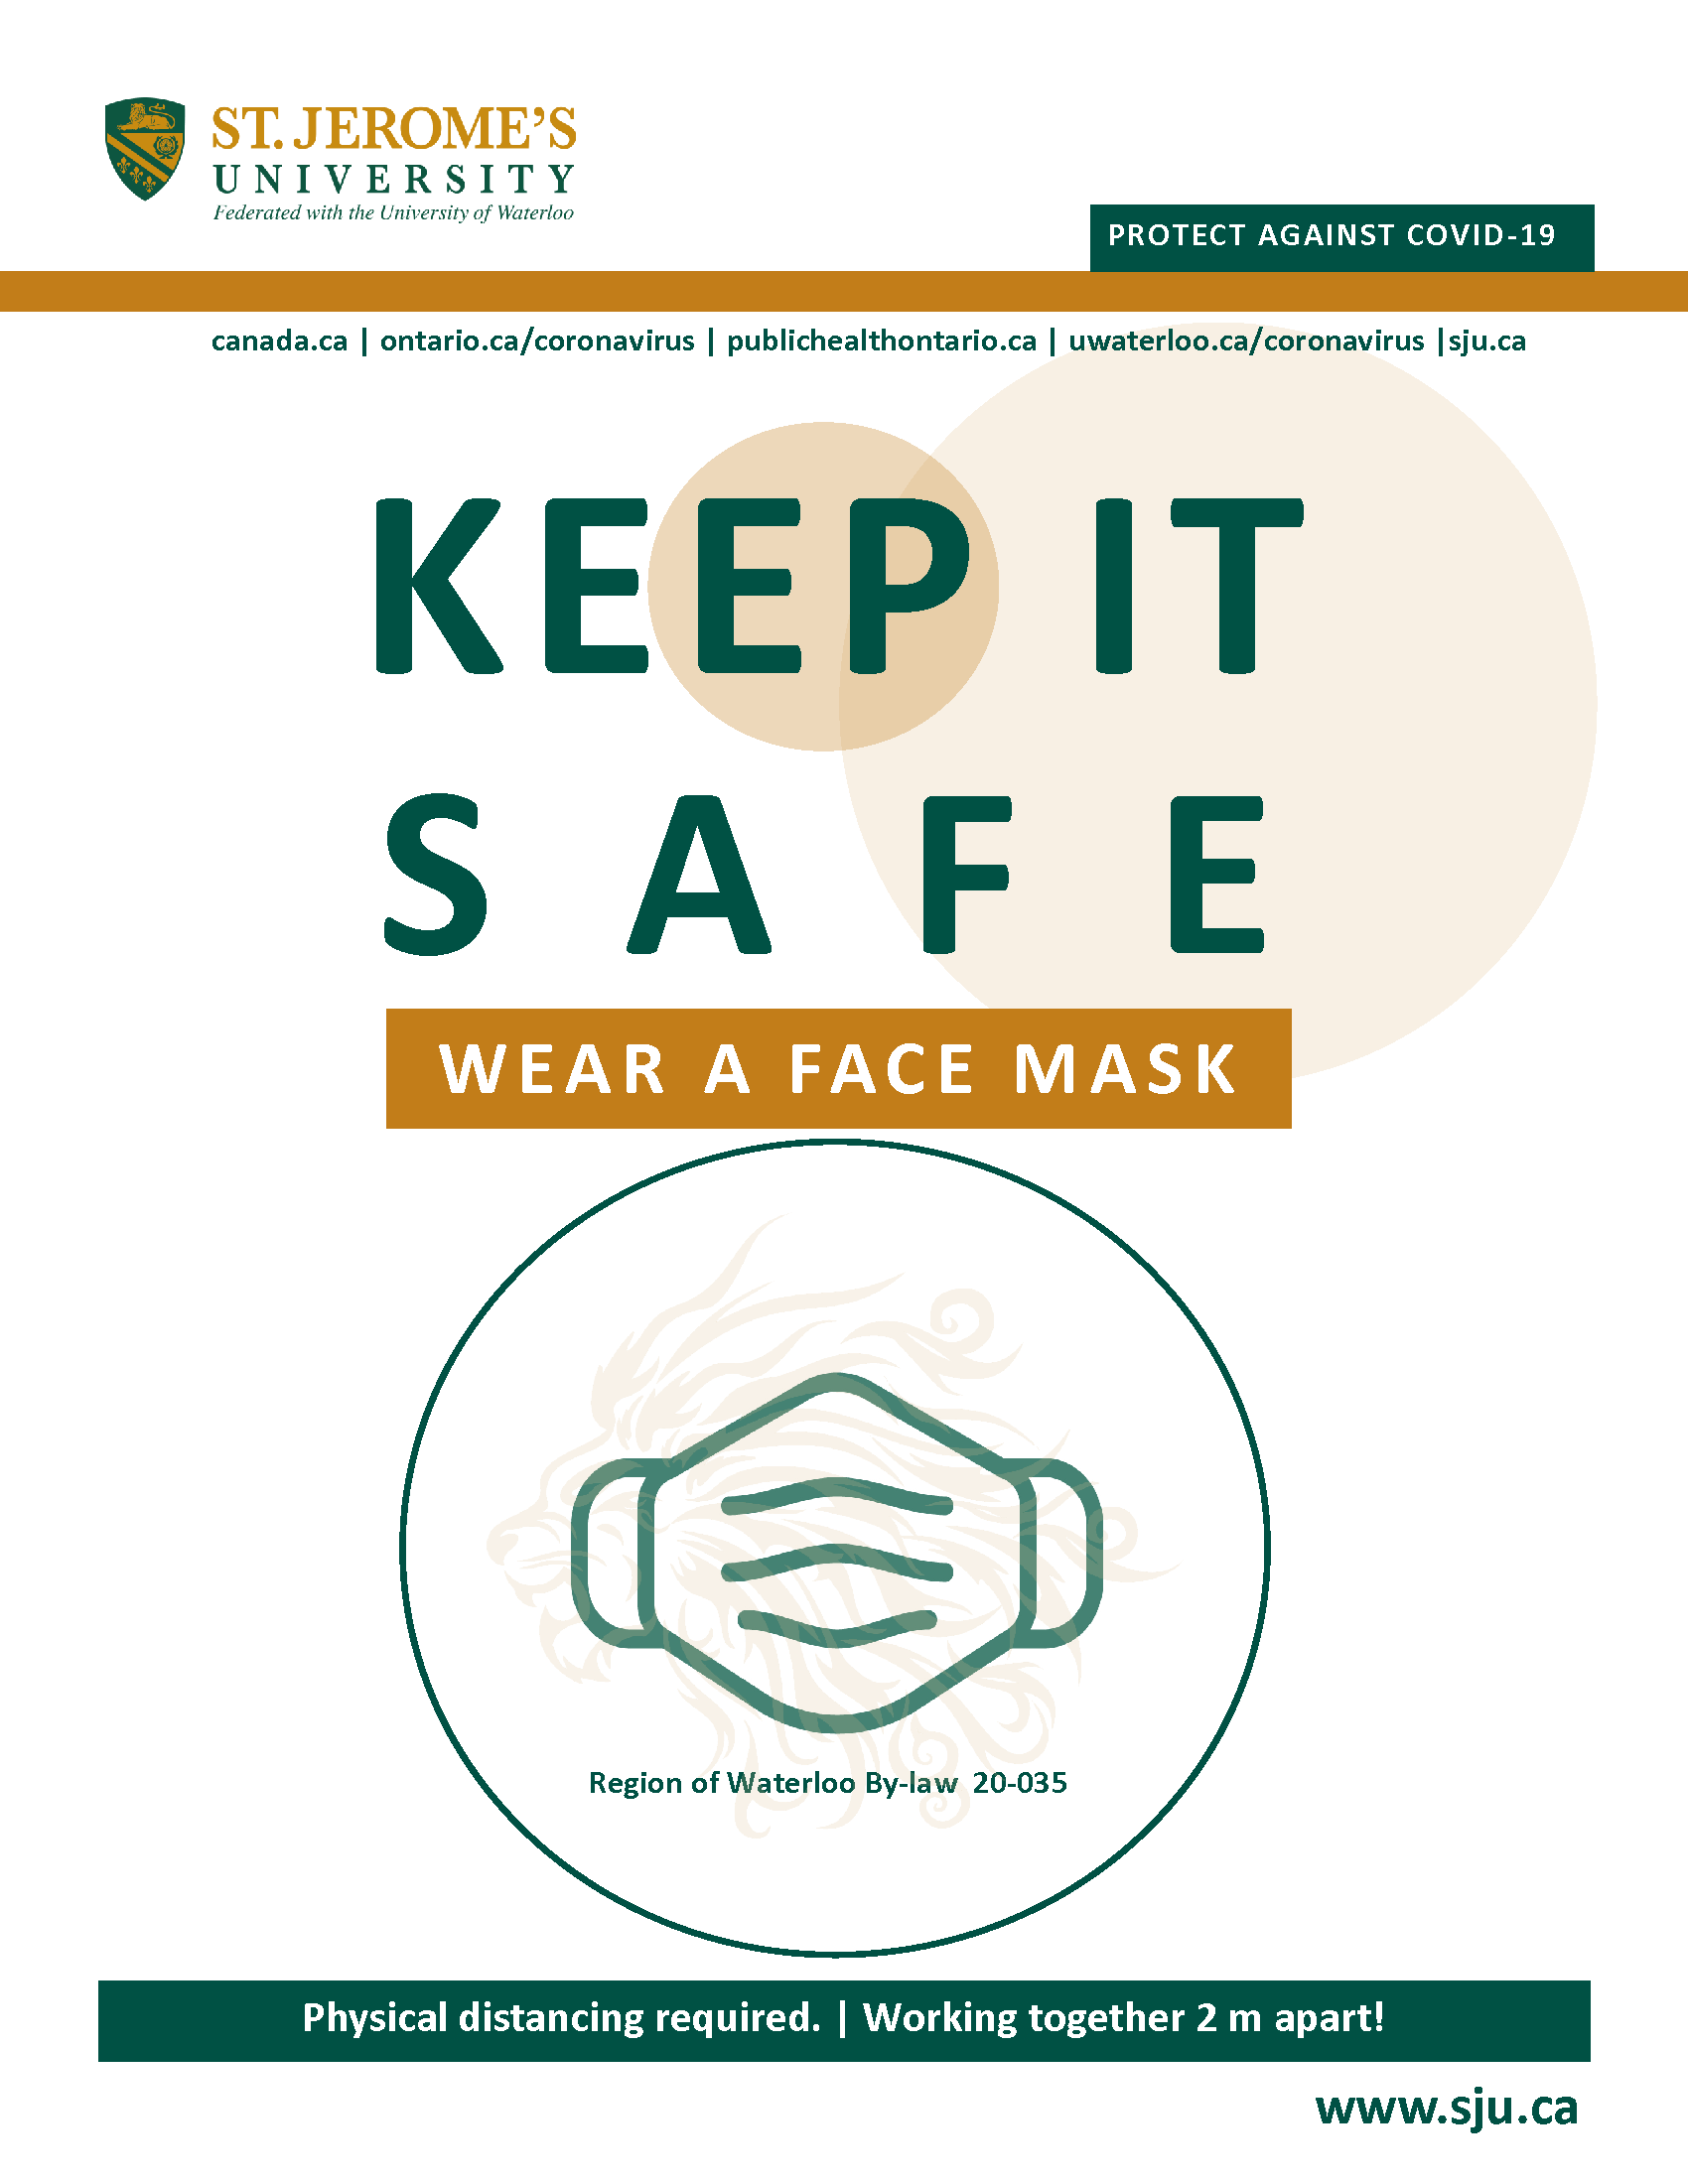 A stylized image of a face mask and above it reads Keep It Safe - Wear a Face Mask